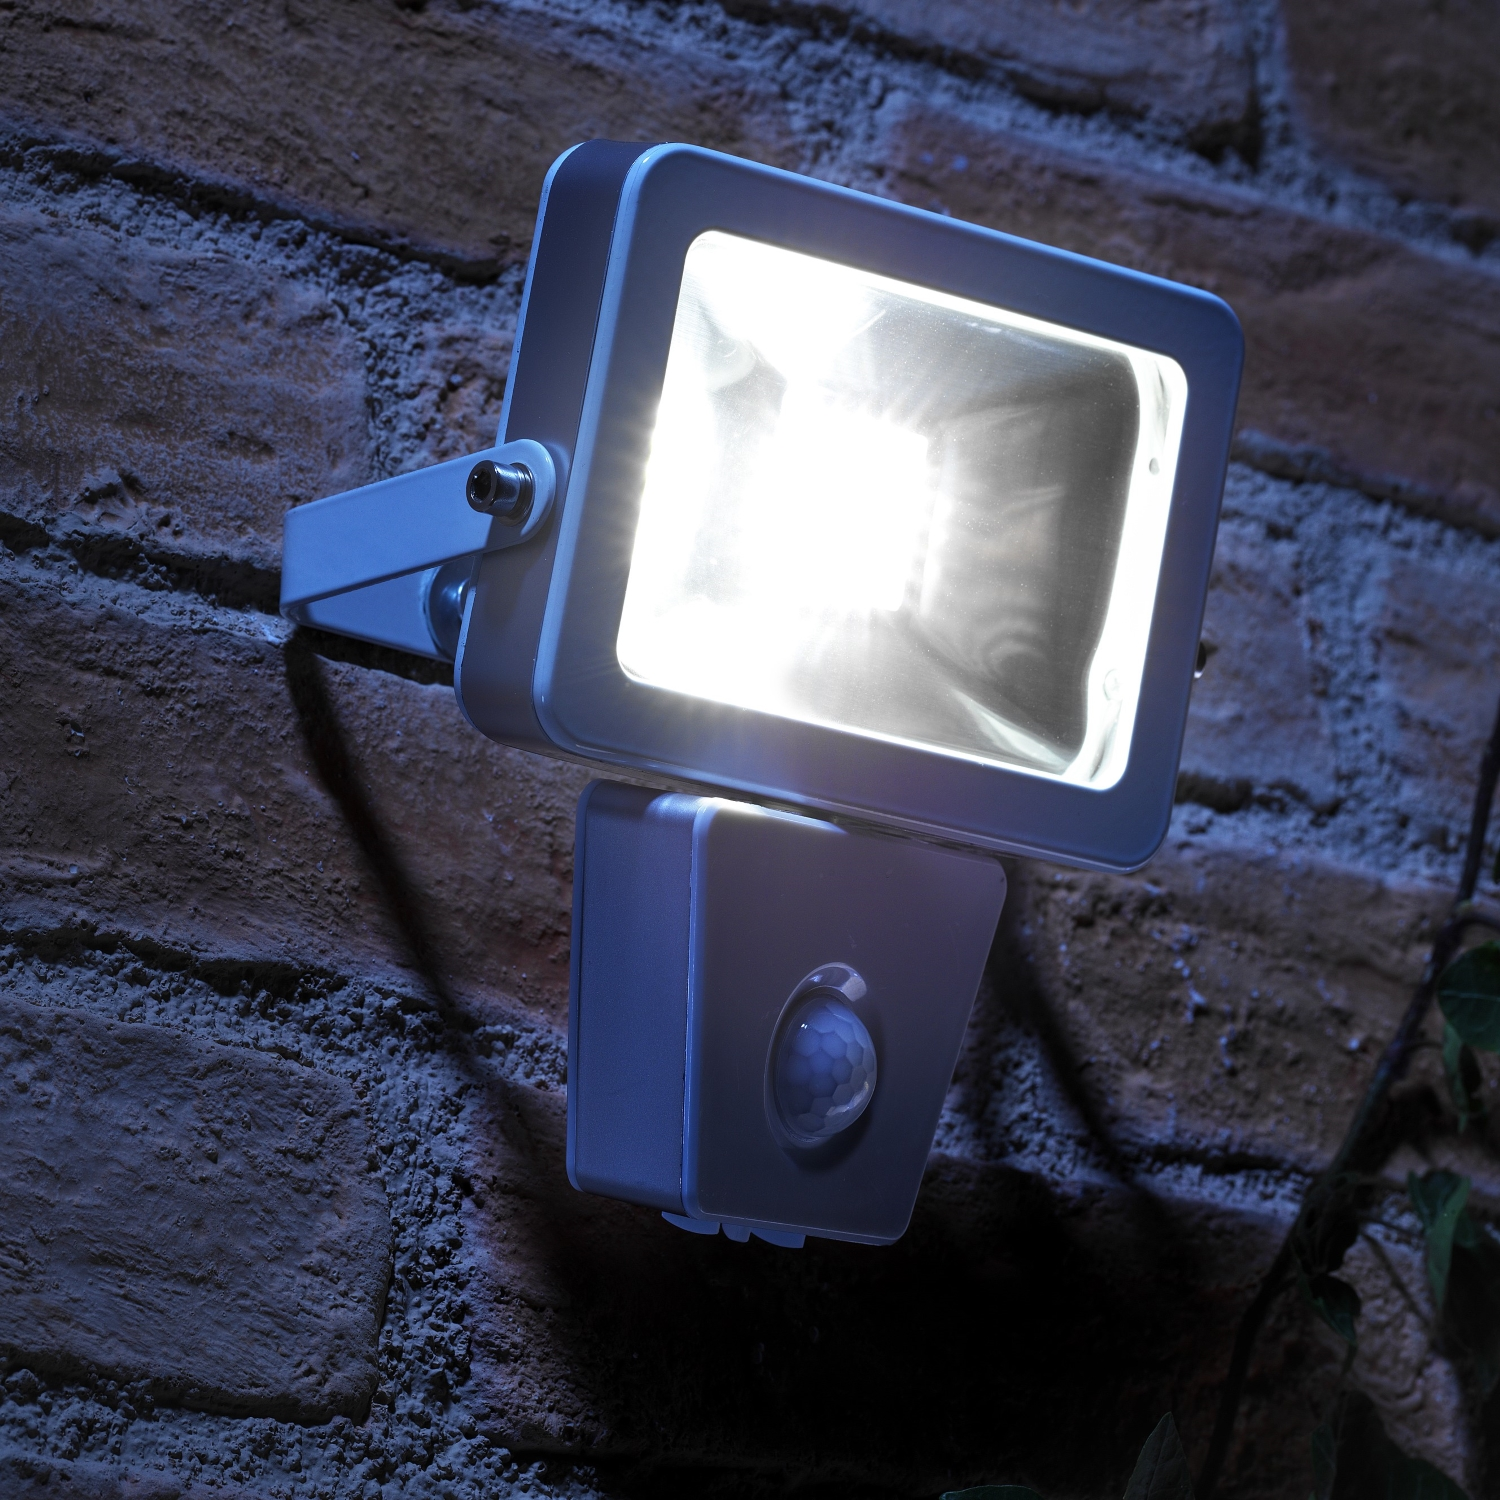 Outdoor Security Lights Pir: Auraglow 10W LED Motion Activated PIR Sensor Outdoor